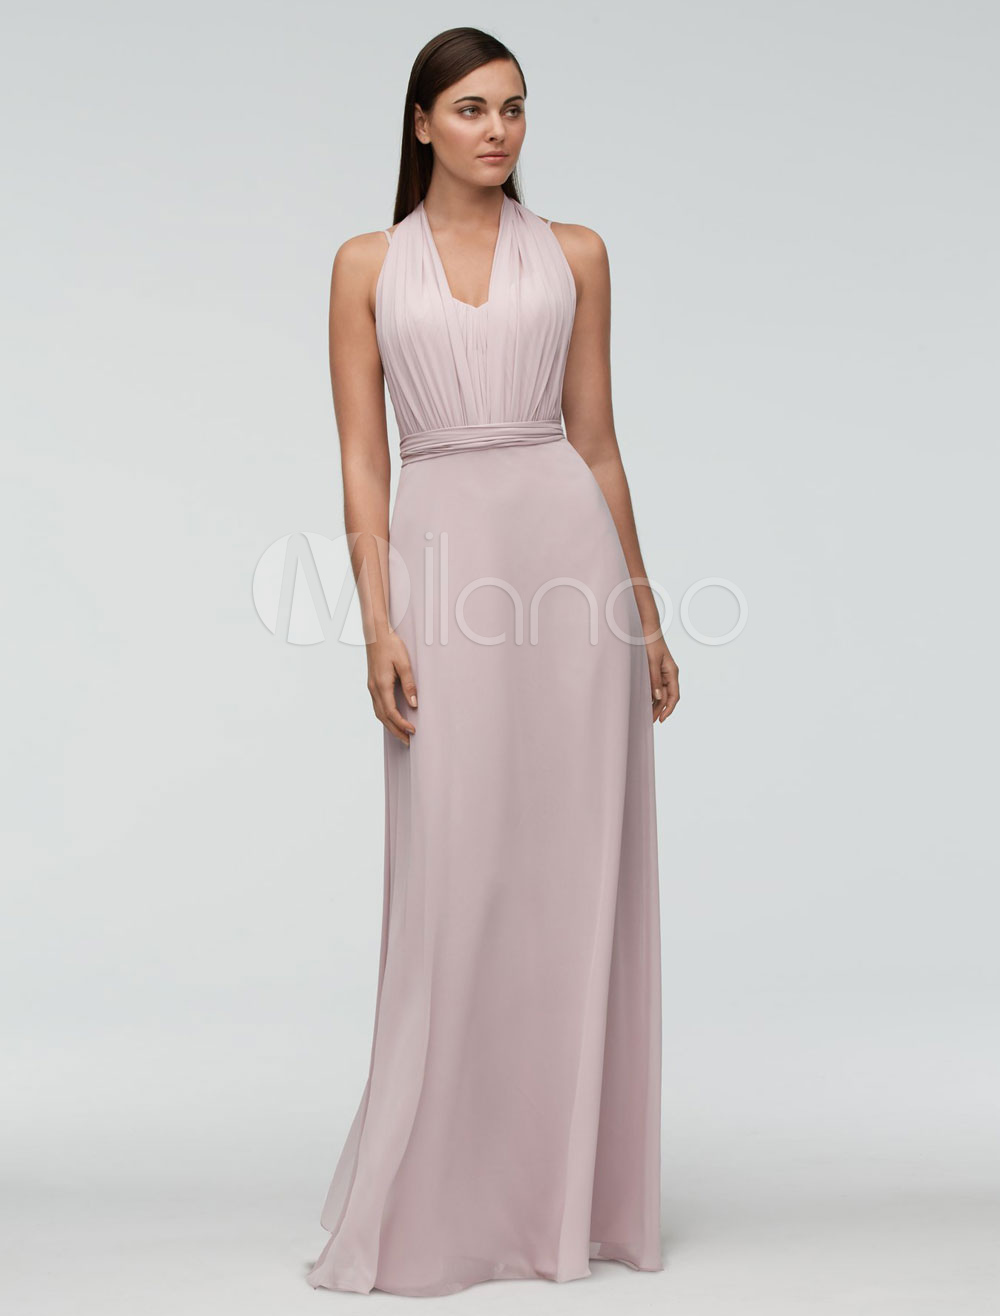 Dusty Pink Bridesmaid Dress Chiffon Floor Length Wedding Party Dress Halter Backless A Line Occasion Dress